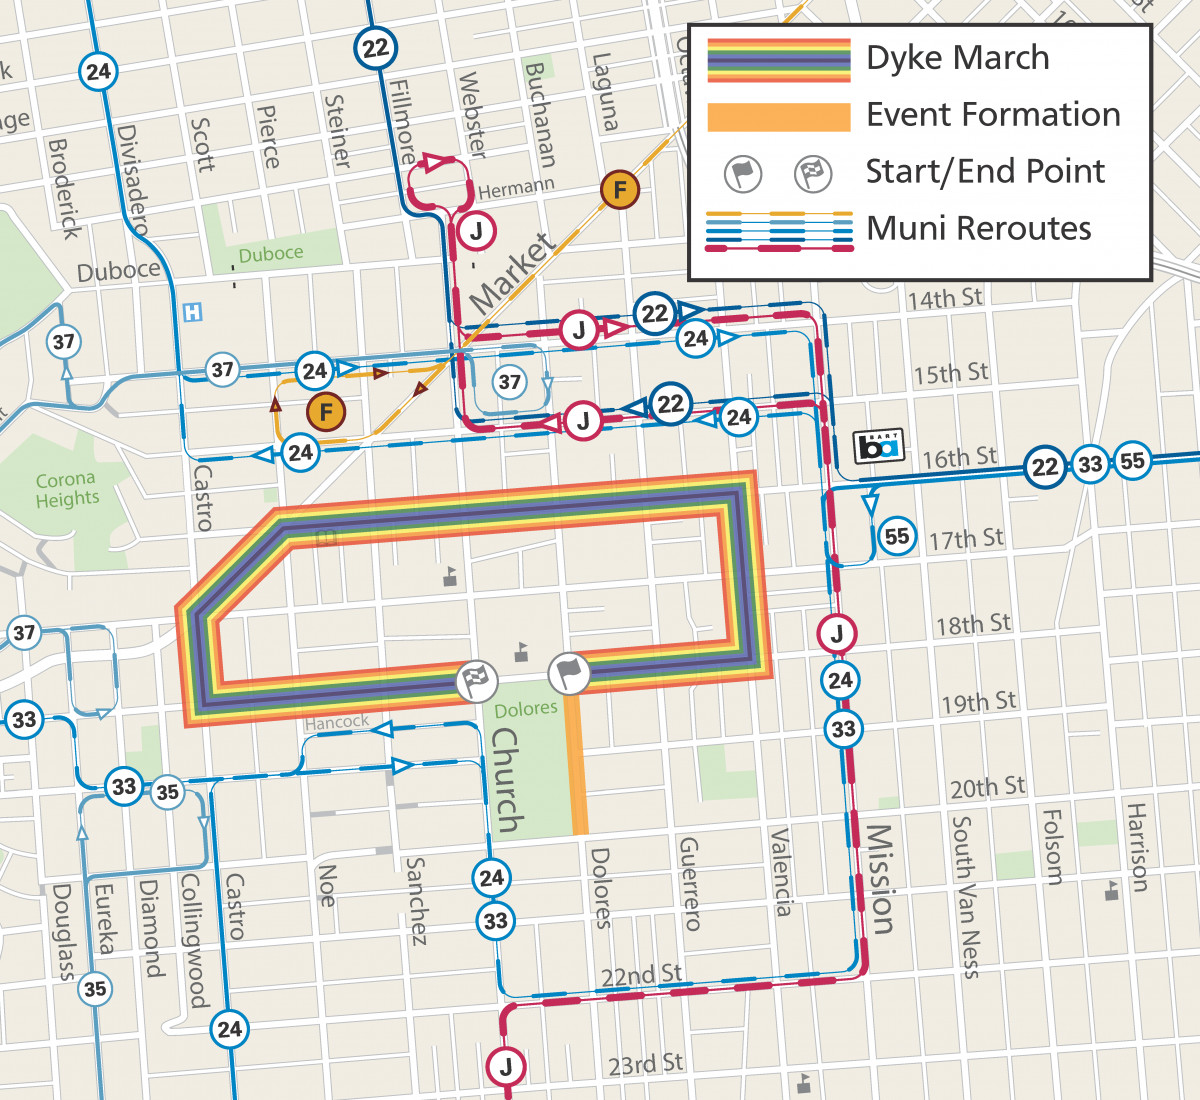 Dyke March route, including Muni reroutes.